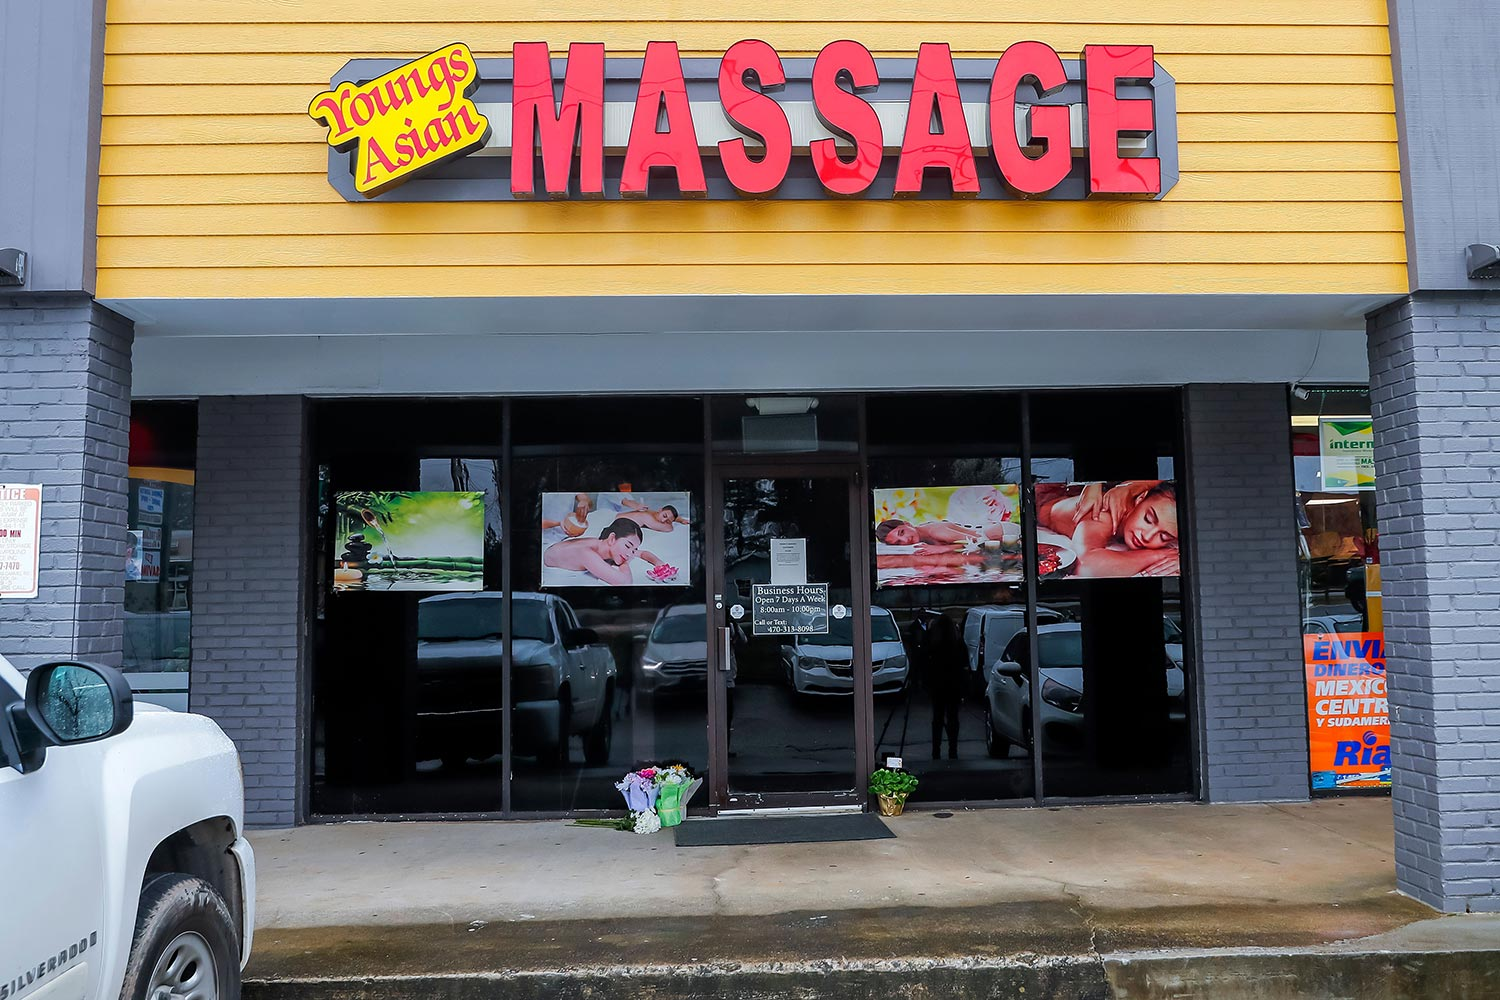 Young's Asian Massage